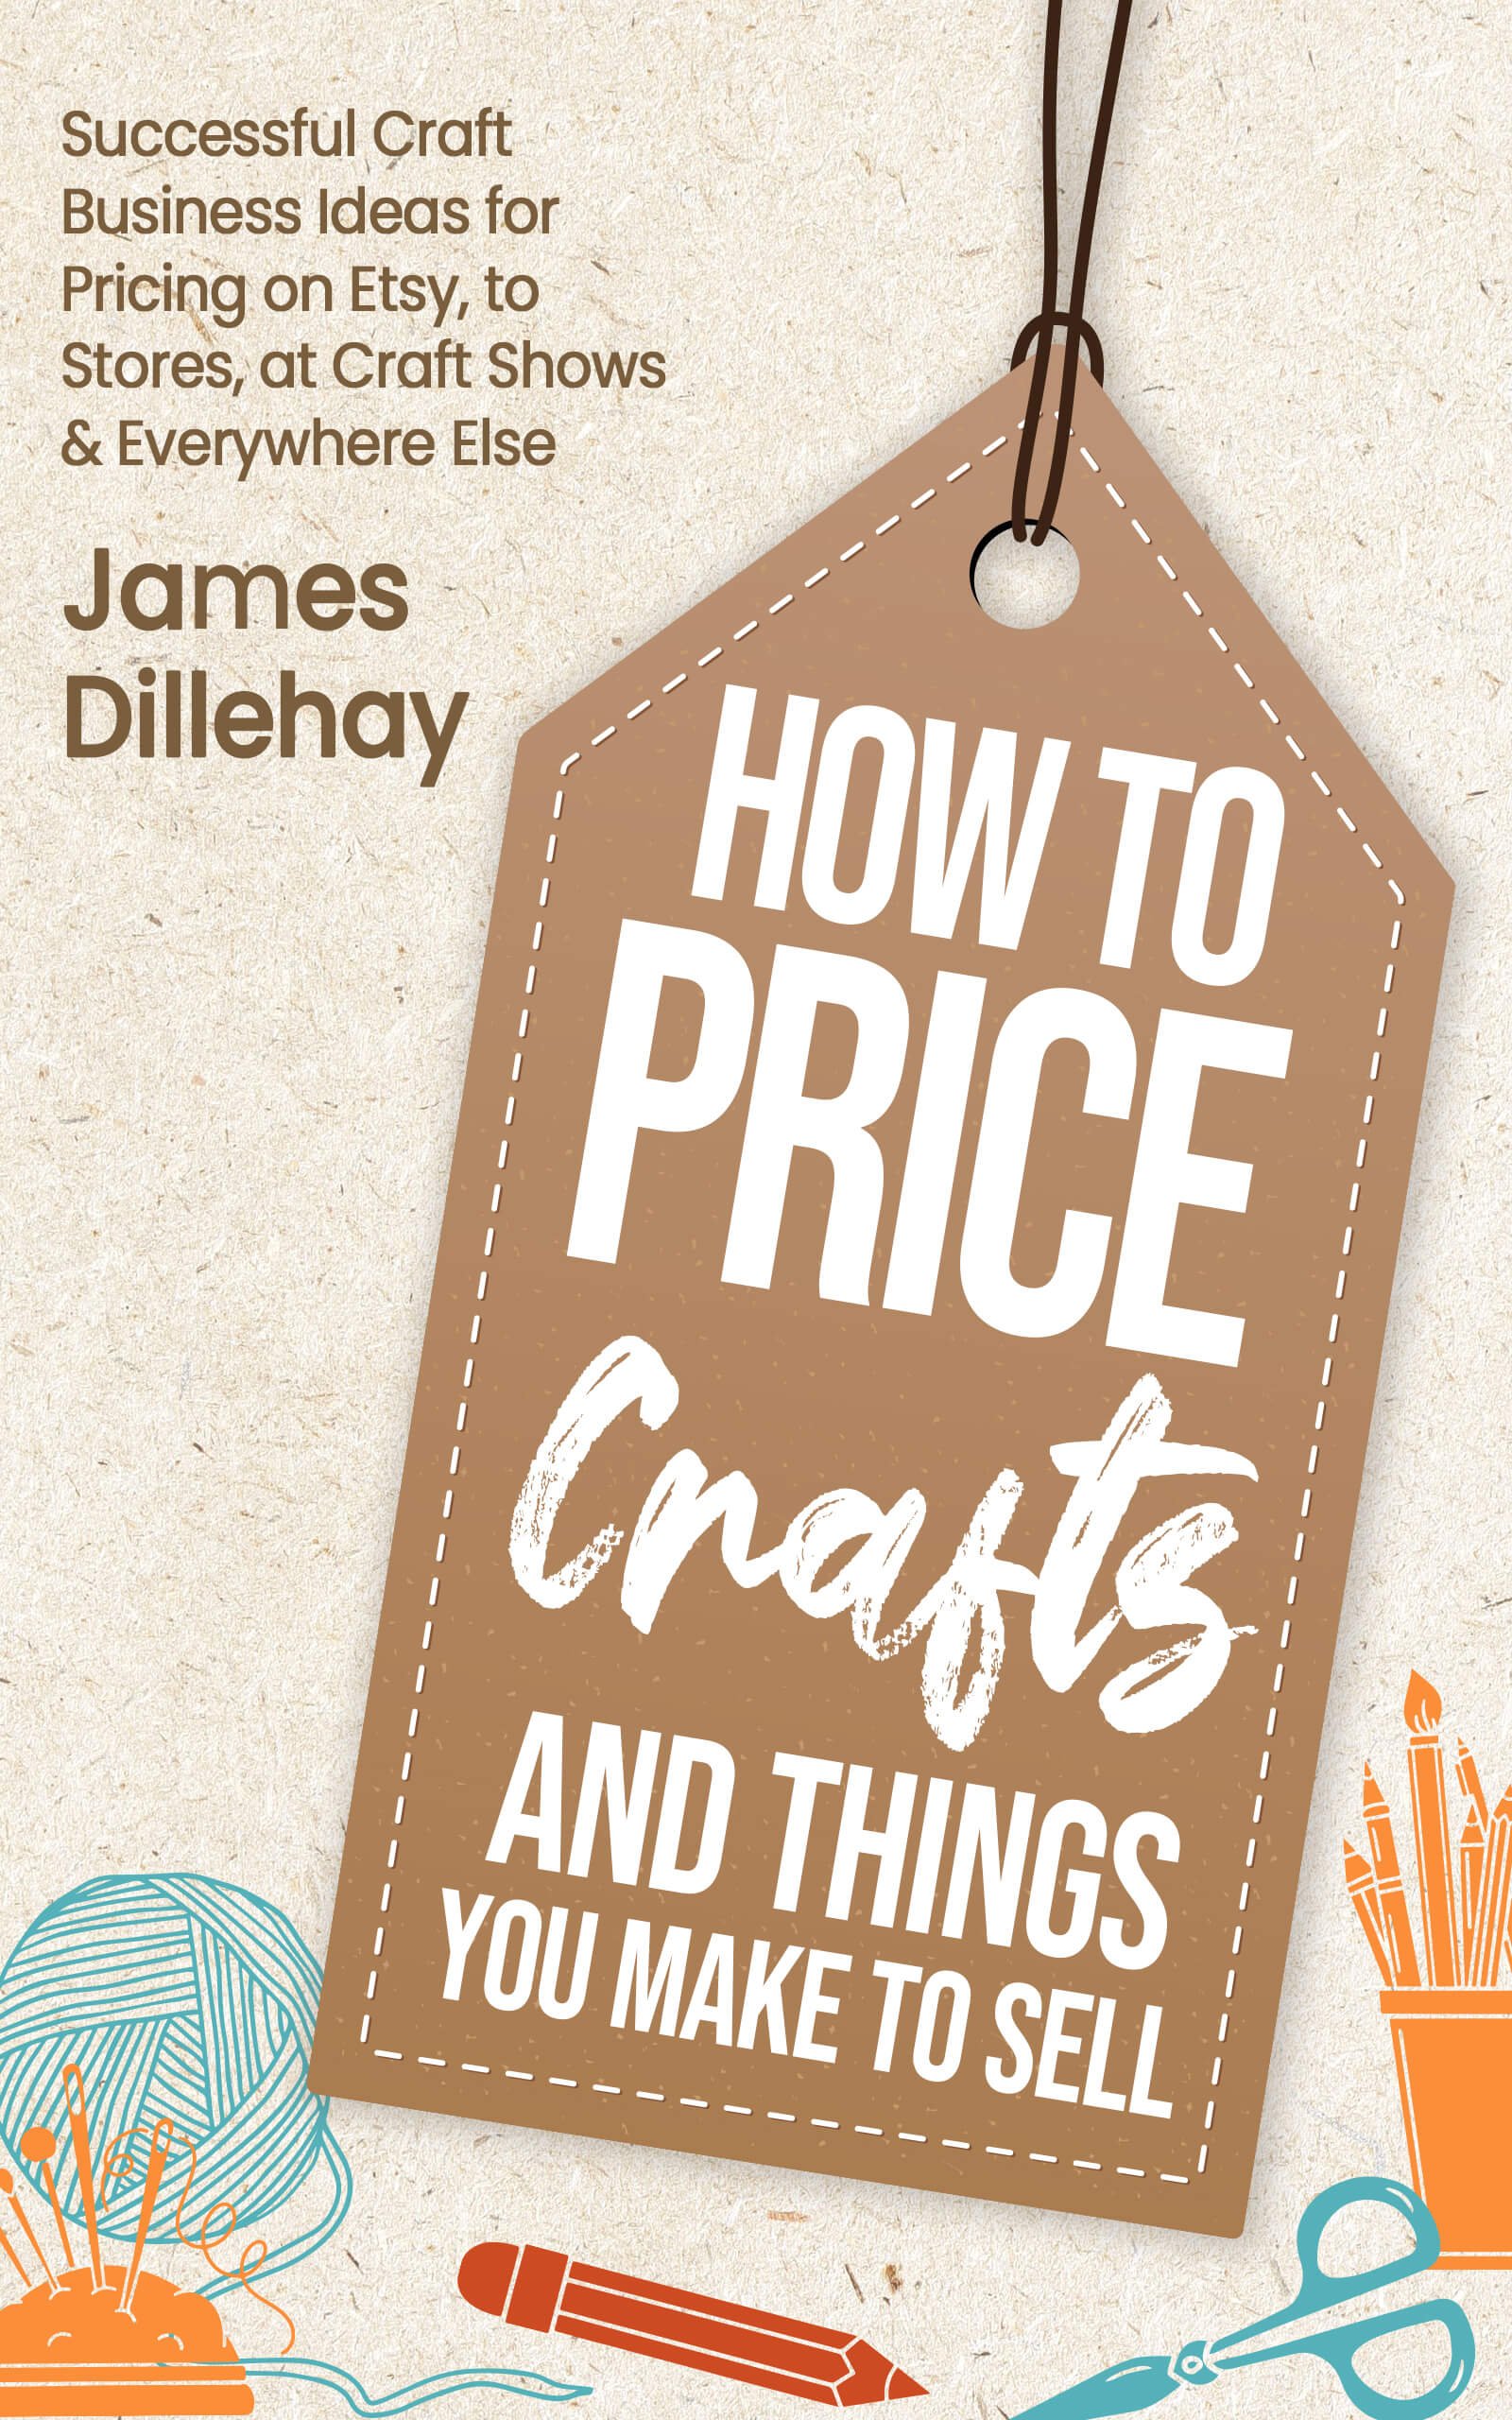 How to Price Crafts and things you make to Sell_v1SMALL